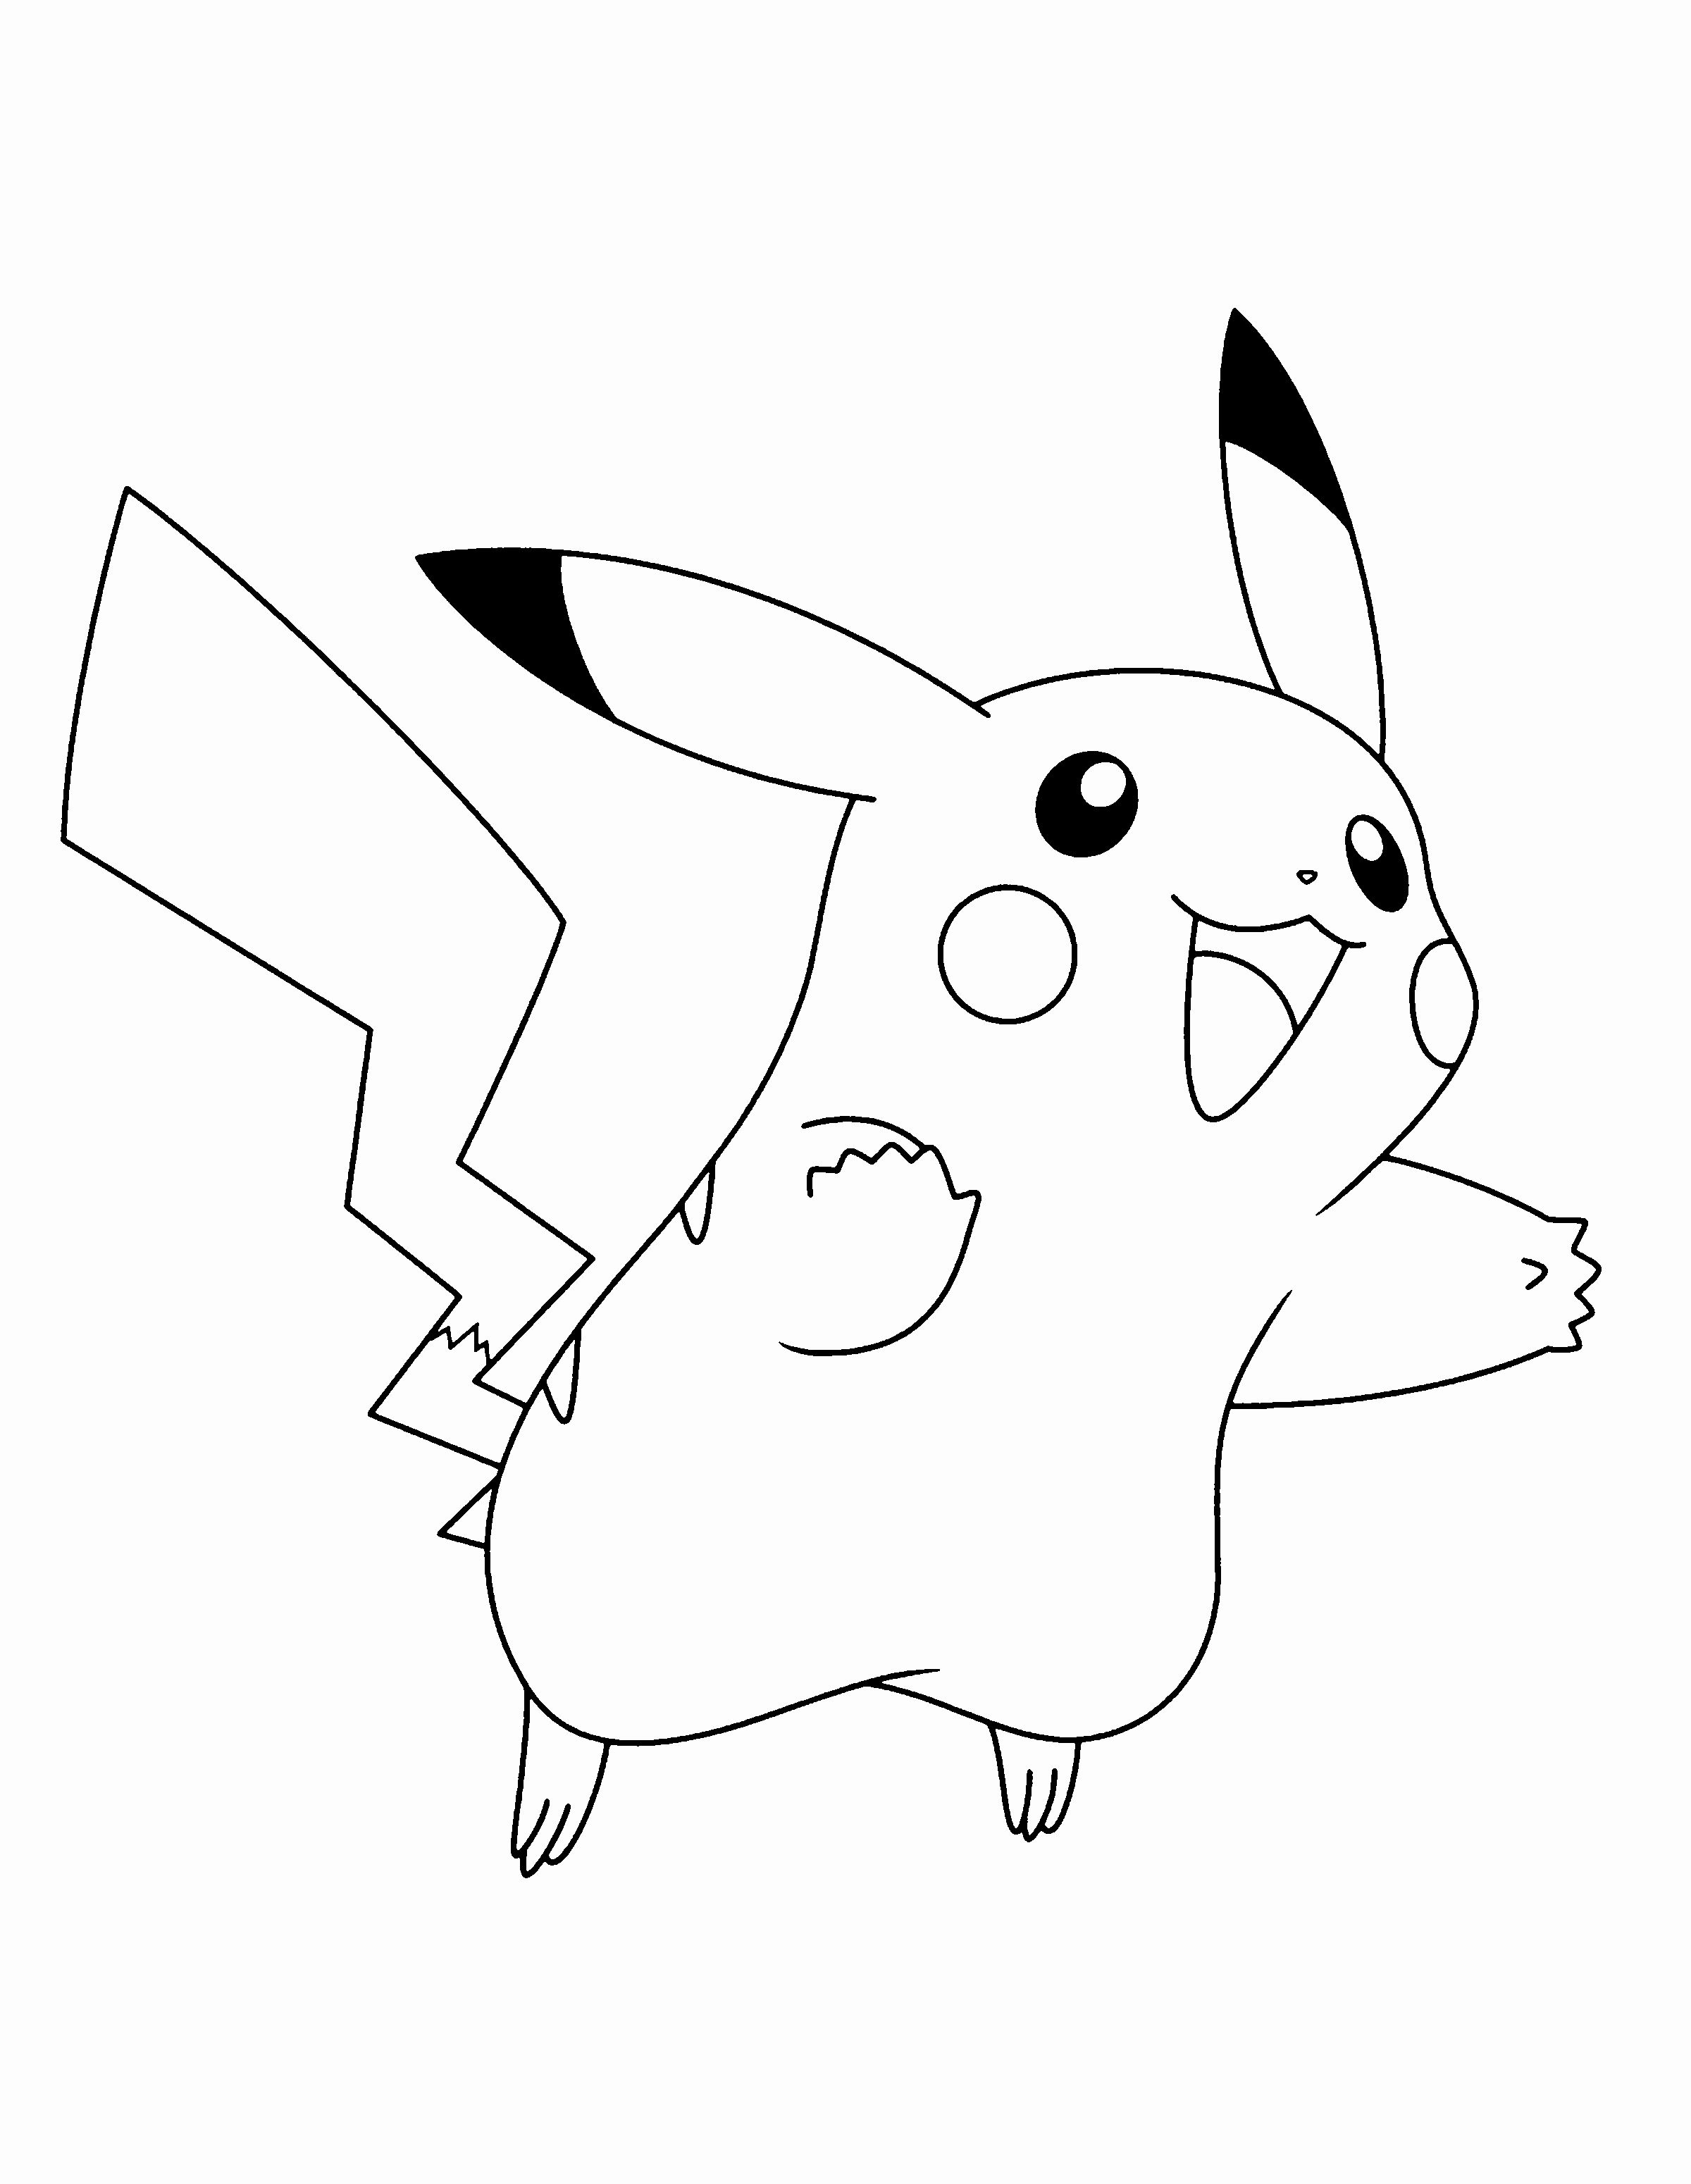 Pokemon Drawing Book Pdf Awesome Coloring Pages You Color Online Pokemon Coloring Pages Pikachu Coloring Page Pokemon Coloring